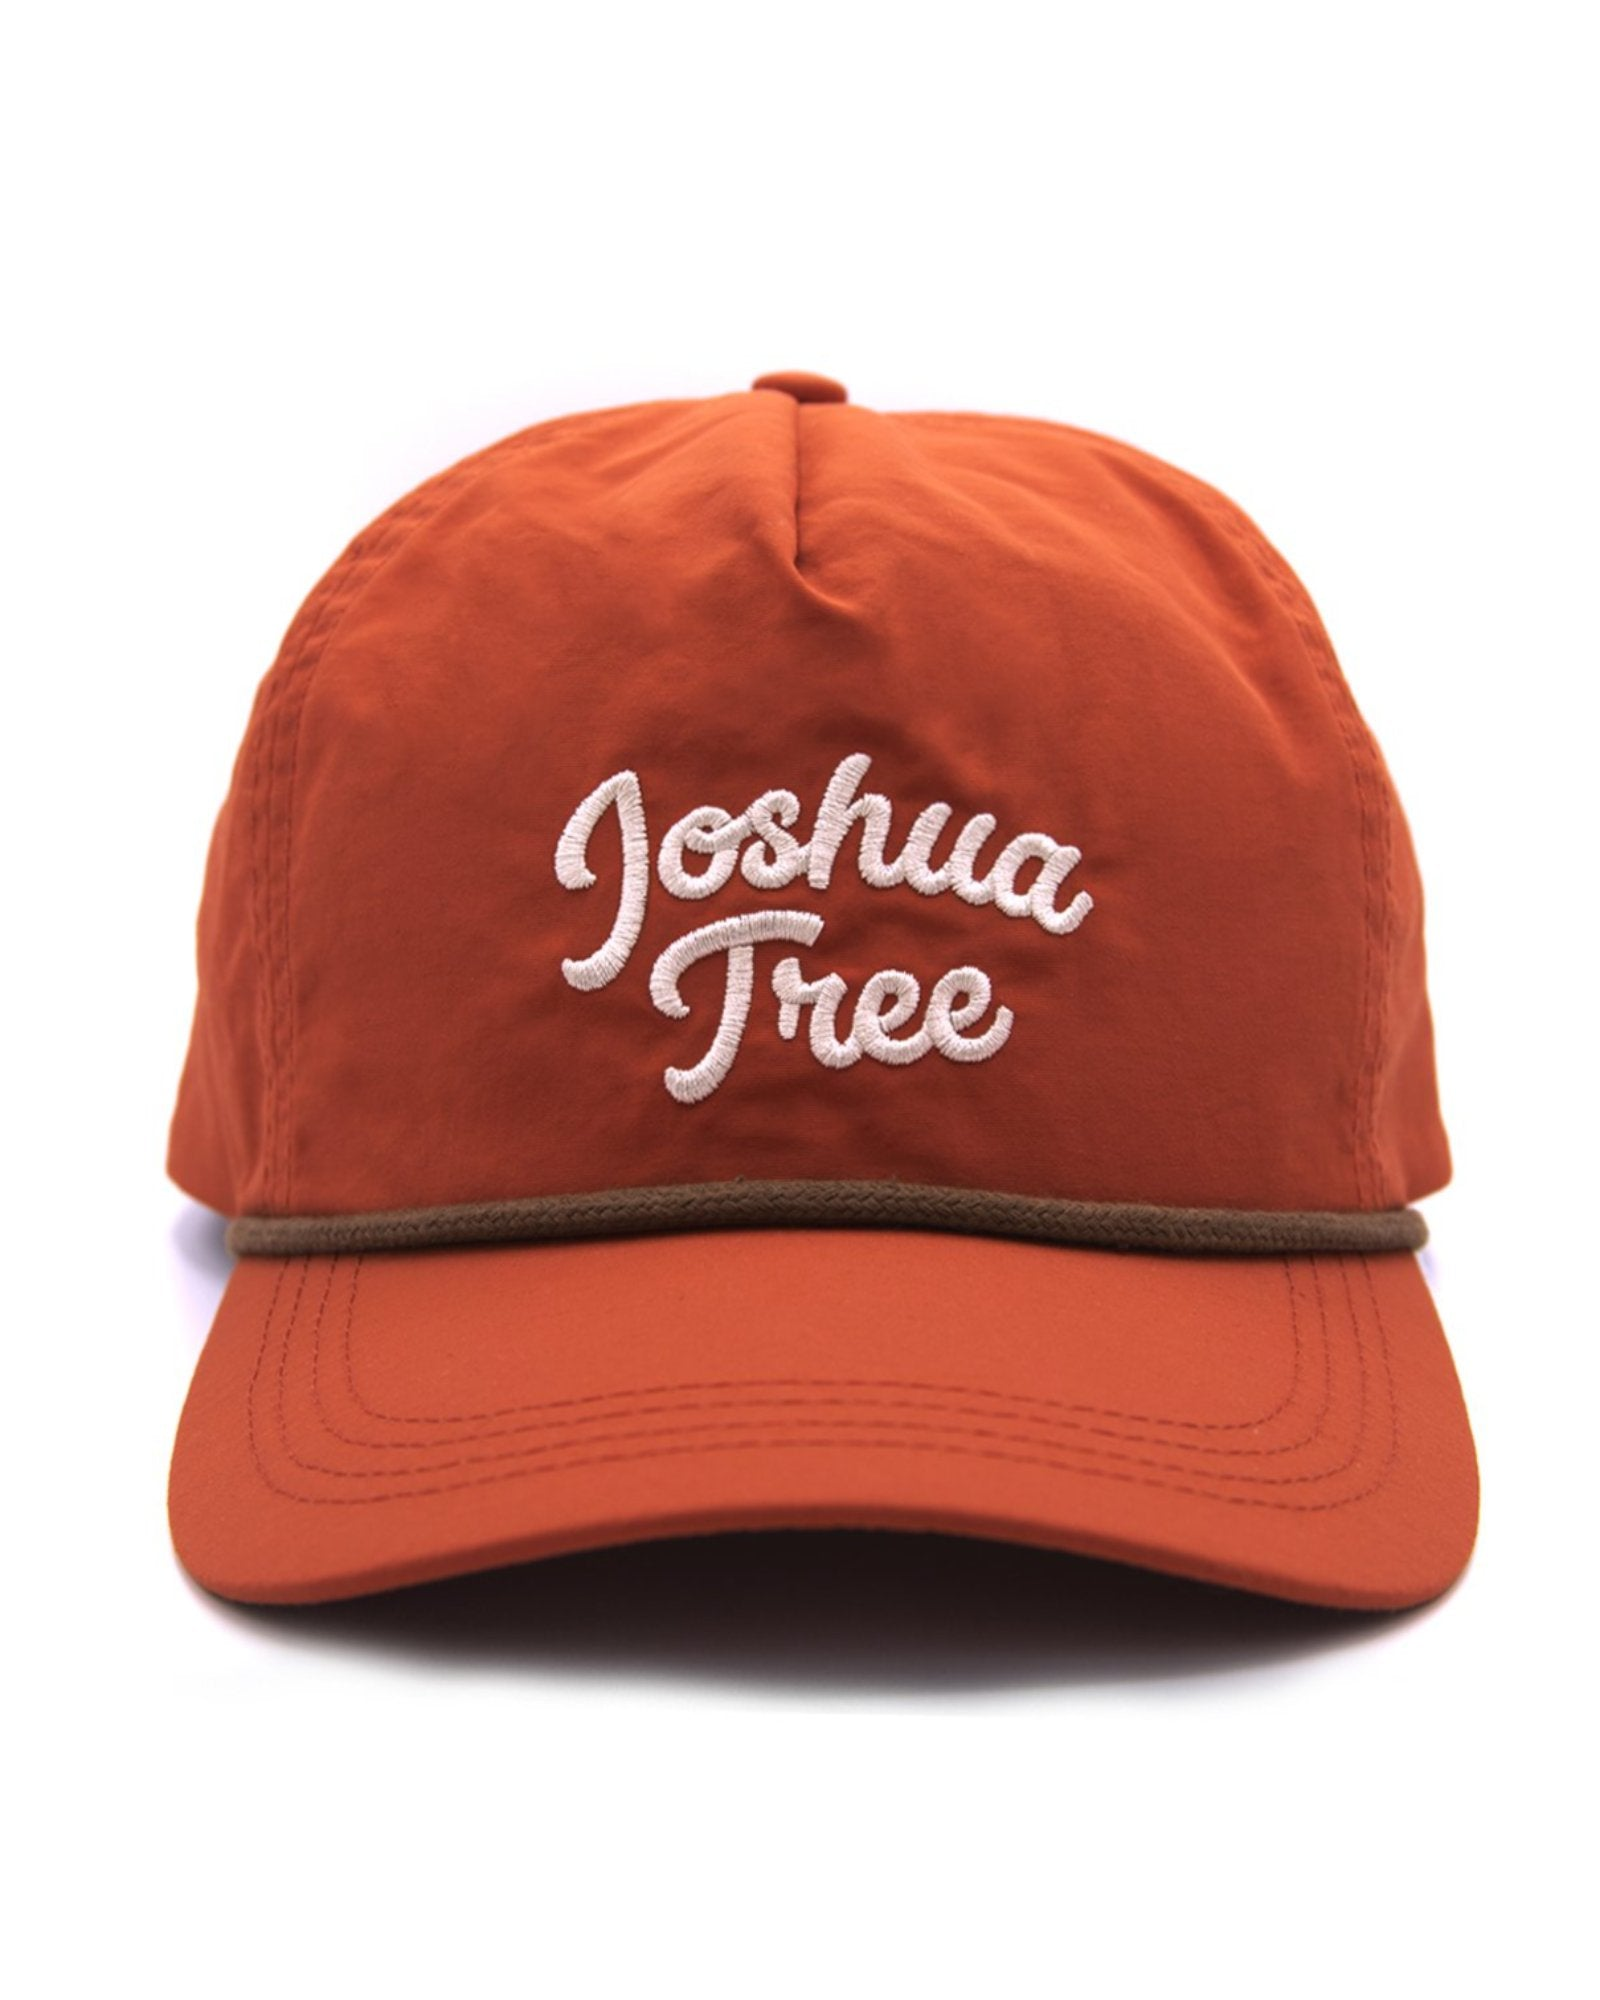 Joshua Tree Throwback Nylon Hat | Parks Project | National Parks Hat